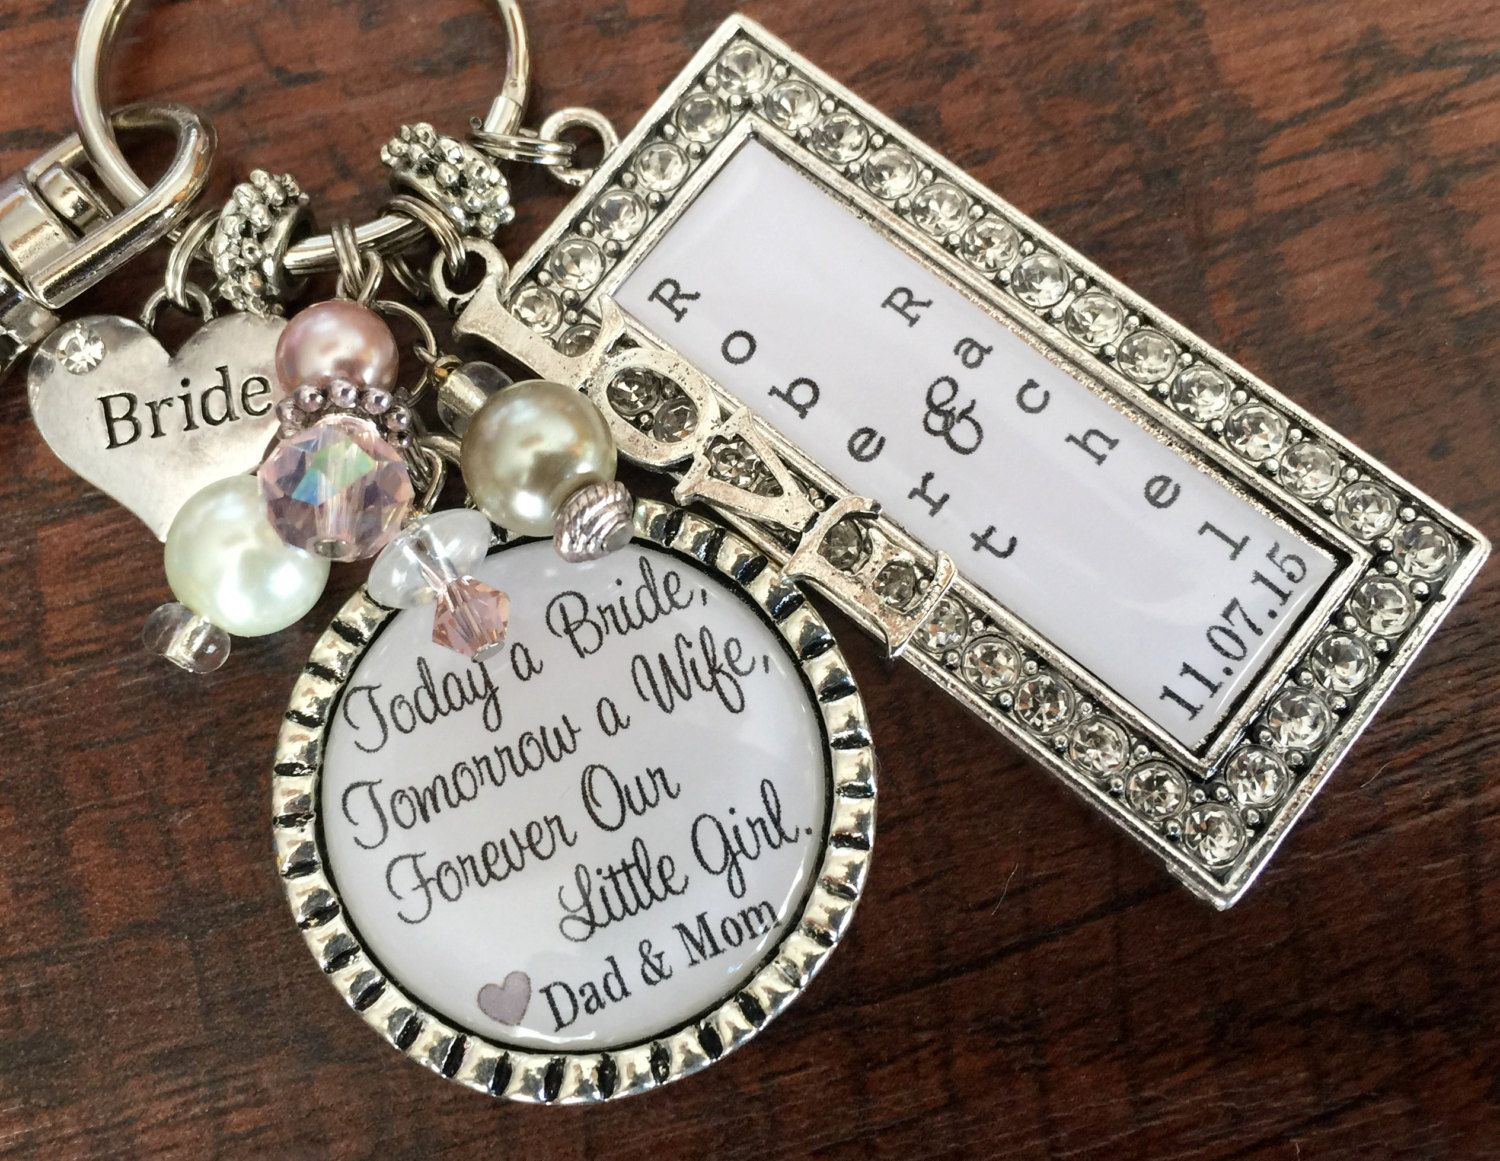 Wedding Gift For BRIDE Bridal Bouquet Charm Ideas Bride From Mom Forever Our Little Girl Daughter In Law